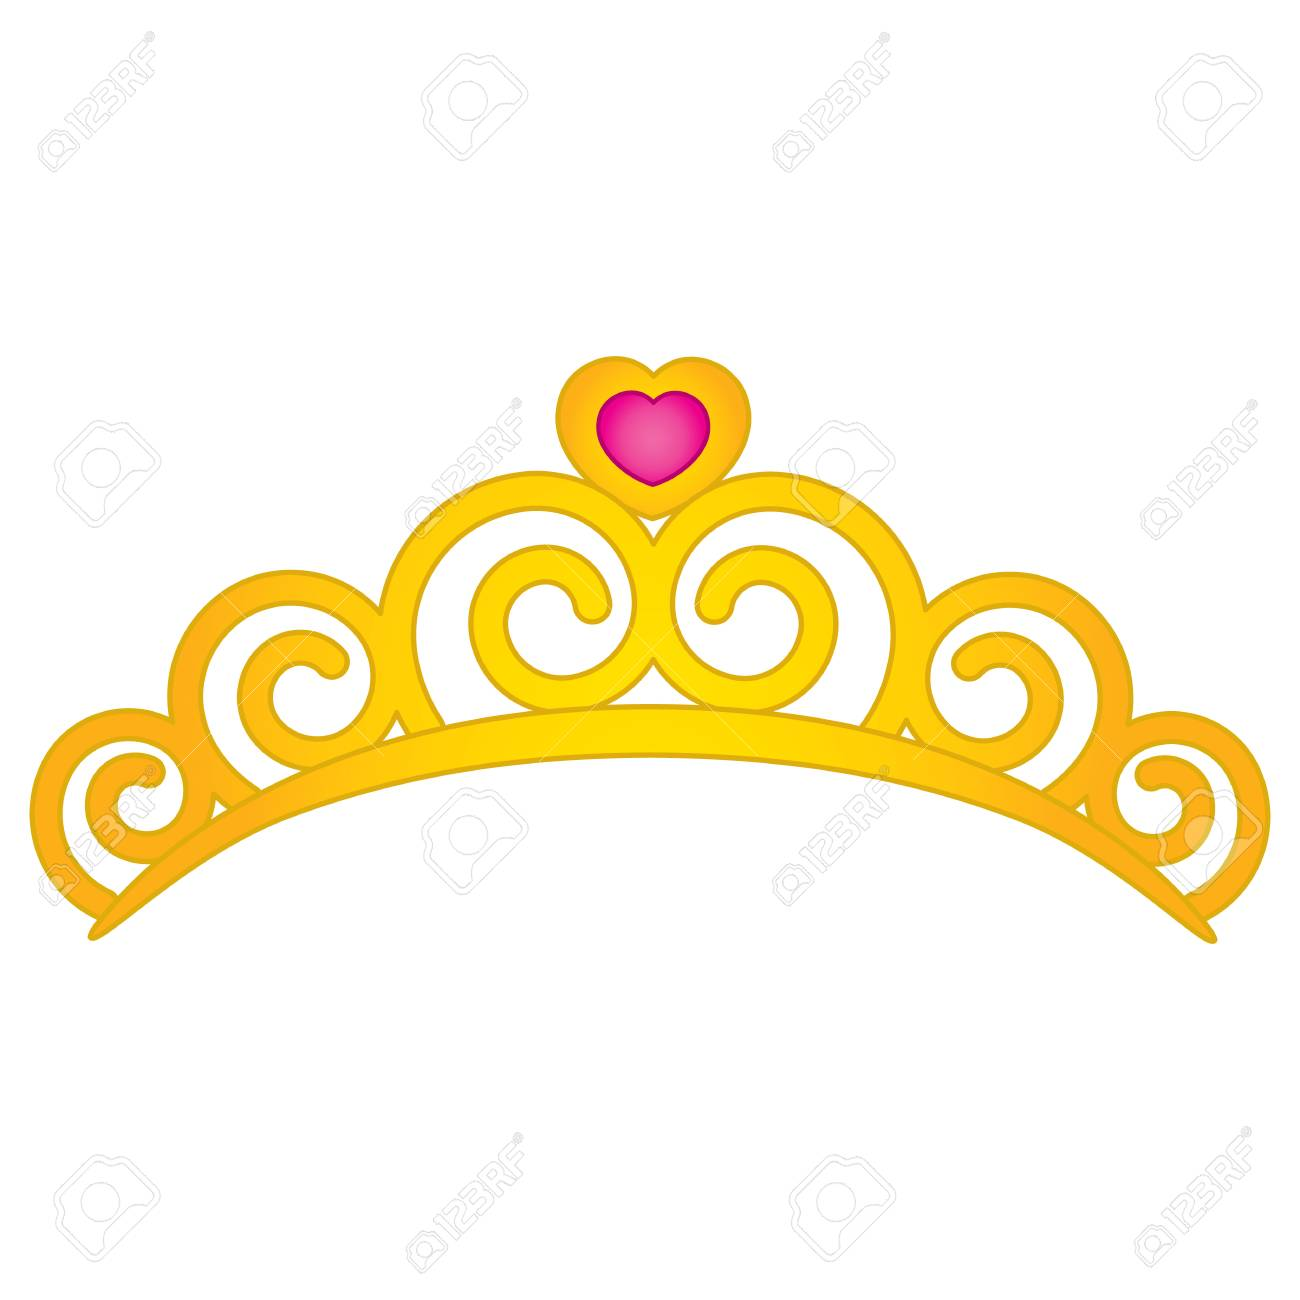 vector tiara with heart emblem tiara vector illustration royalty rh 123rf com tiara vector art tiara vector image